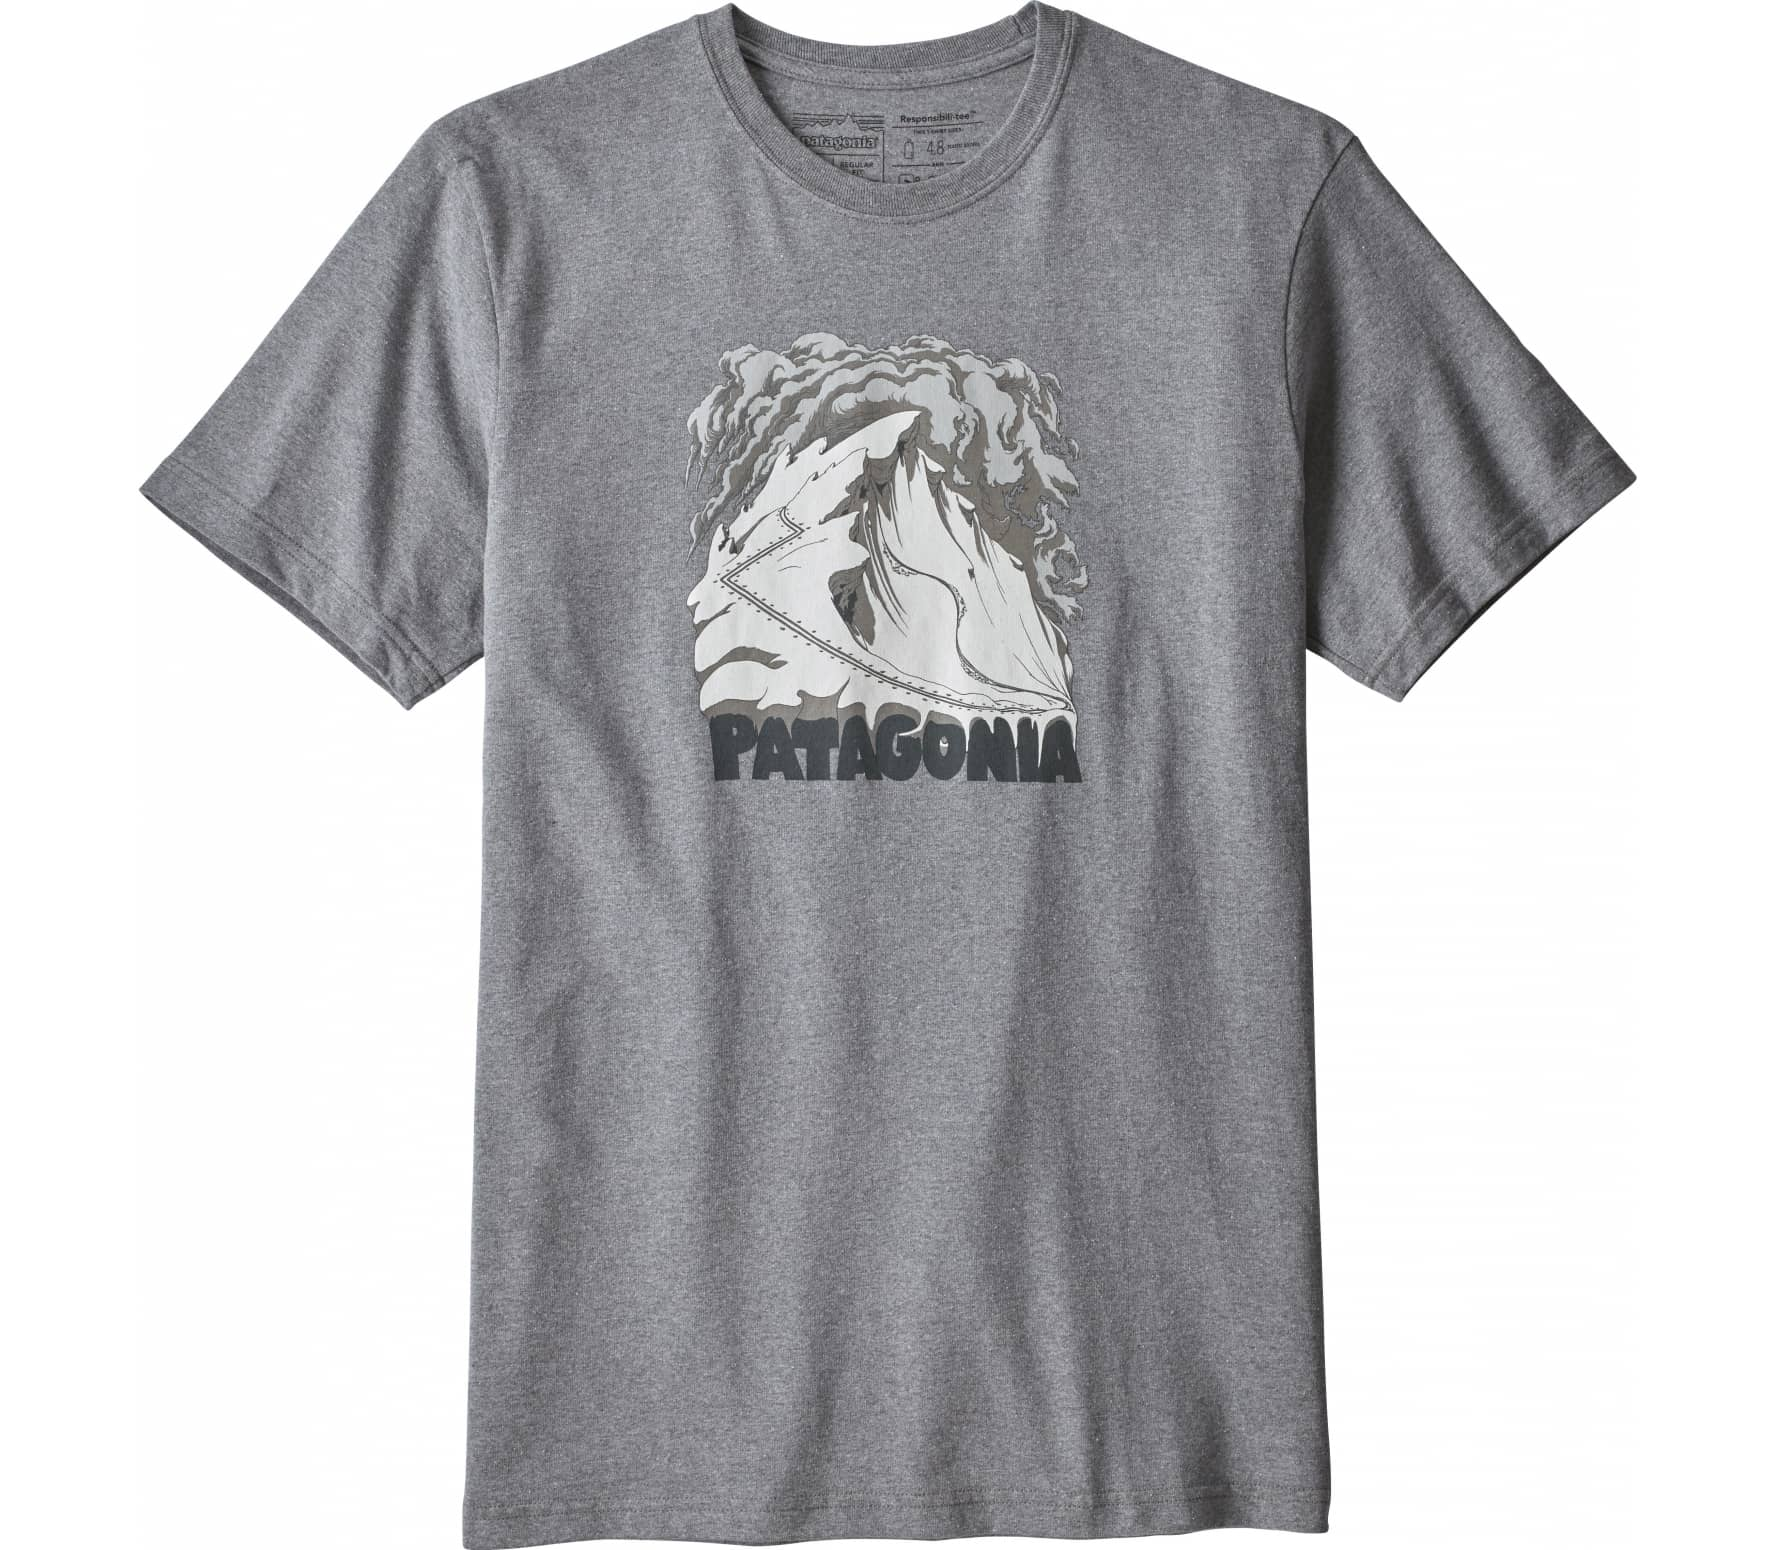 Patagonia - Cornice Canvas Responsibili men's t-shirt (white)